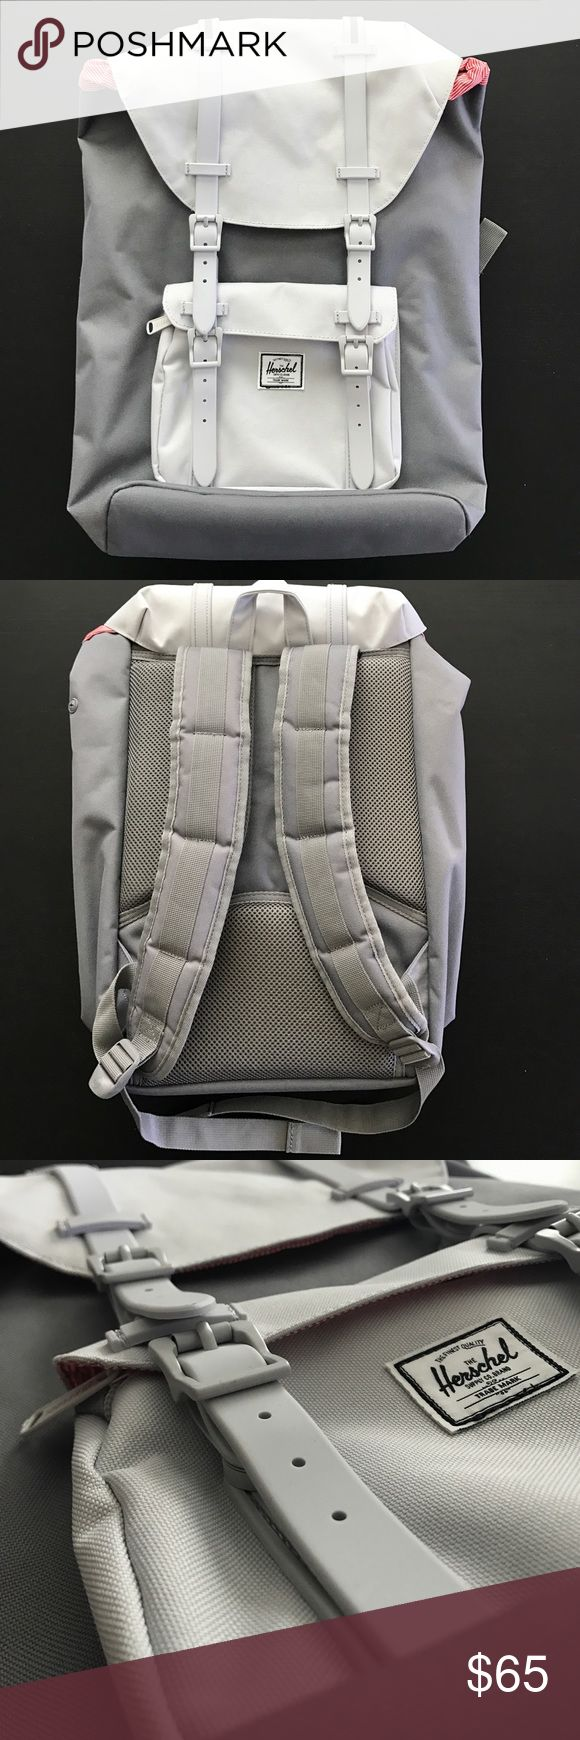 """Herschel Supply Co. Little America Grey Backpack Like NEW Herschel Supply Co. Backpack.    Grey/Lunar Colorway.   Able to fit a 15"""" laptop.  Straps are rubber and not leather  No rips or tears on material. Inside of bag is clean.   Take a look at pics for condition of item. Feel free to ask any questions. Herschel Supply Company Bags Backpacks"""